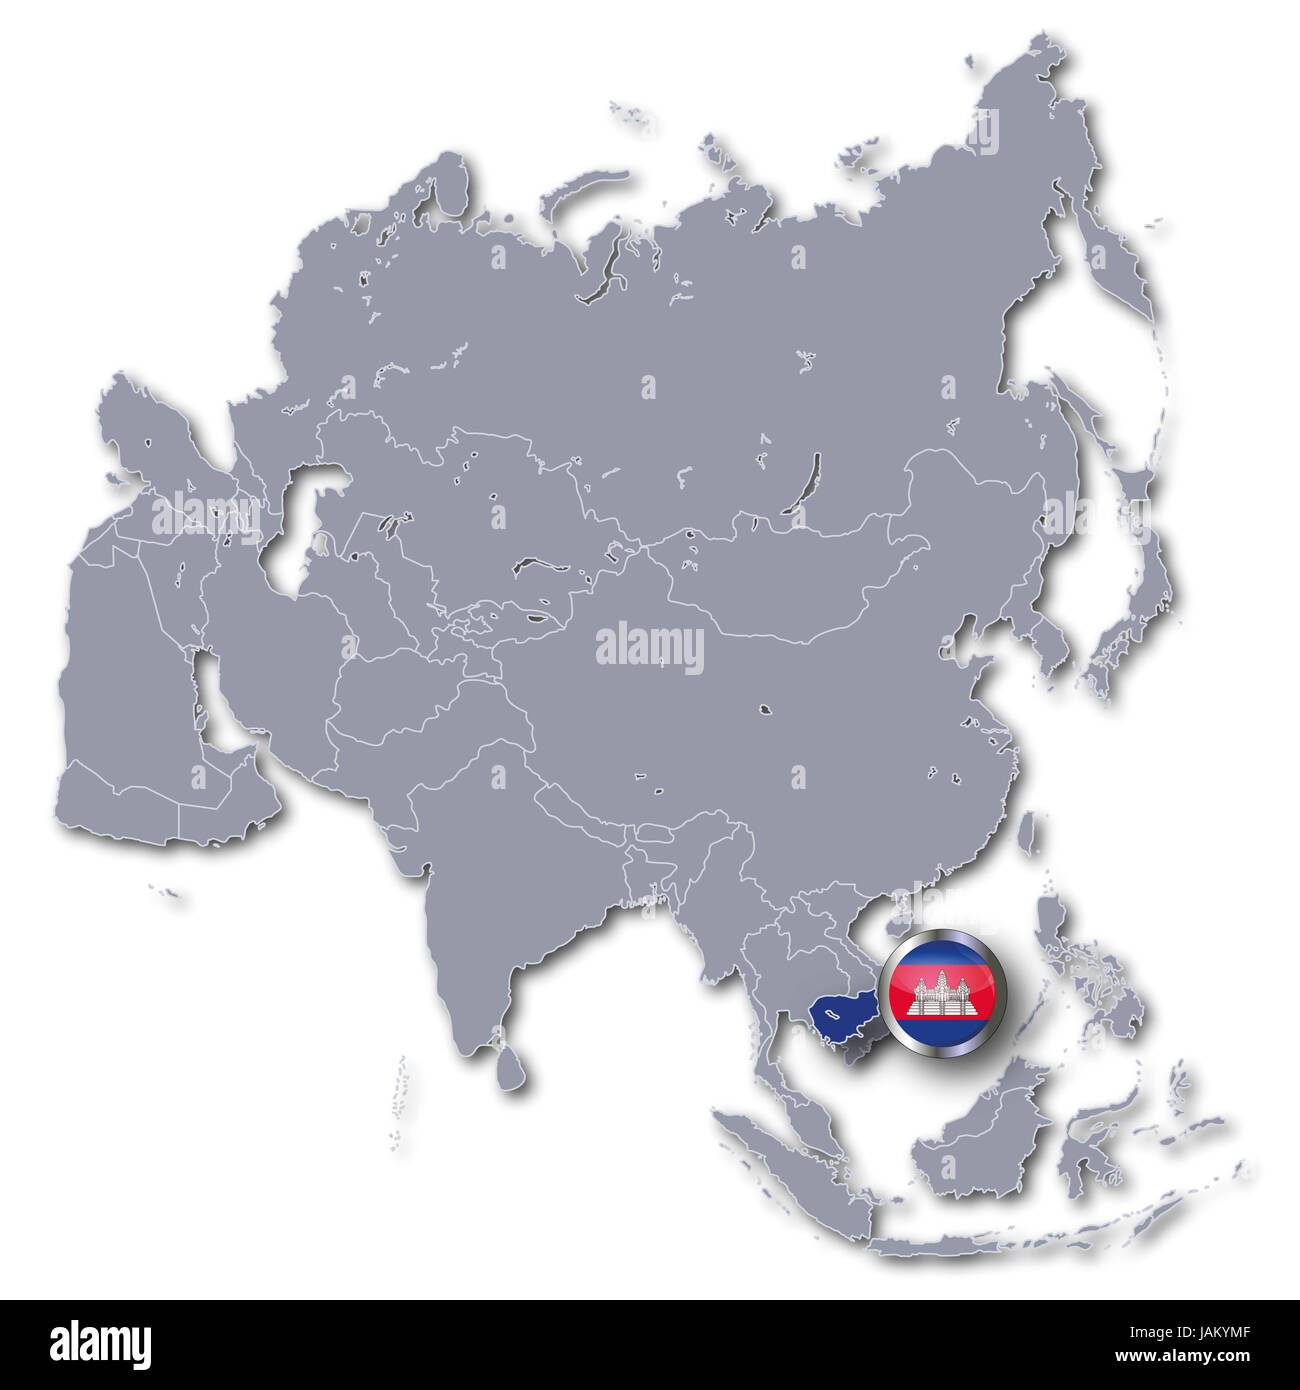 asia map with cambodia Stock Photo: 144268335 - Alamy